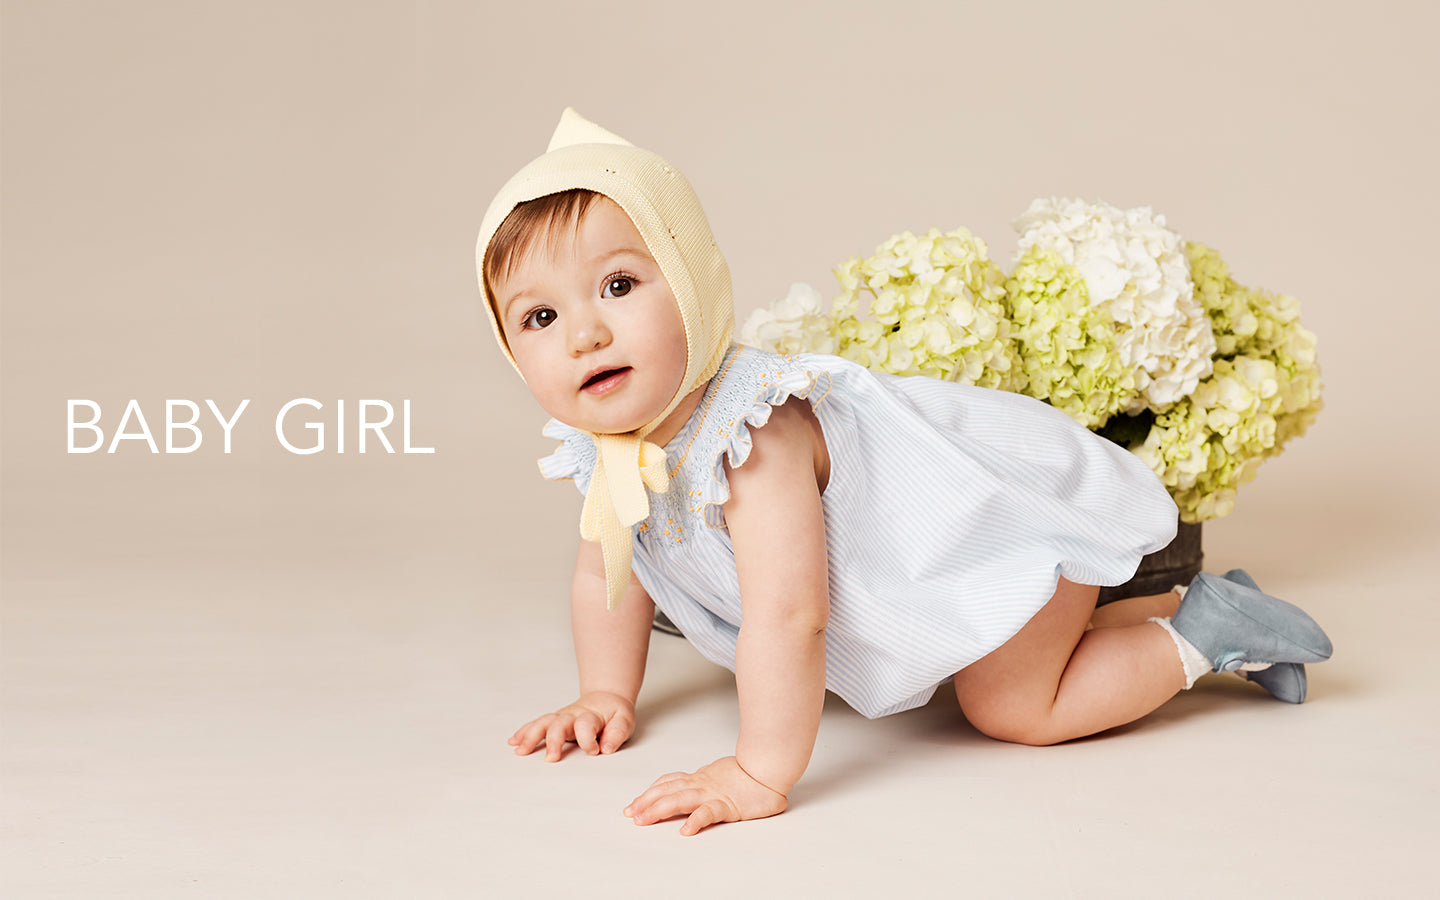 BABY GIRL LOOKBOOK